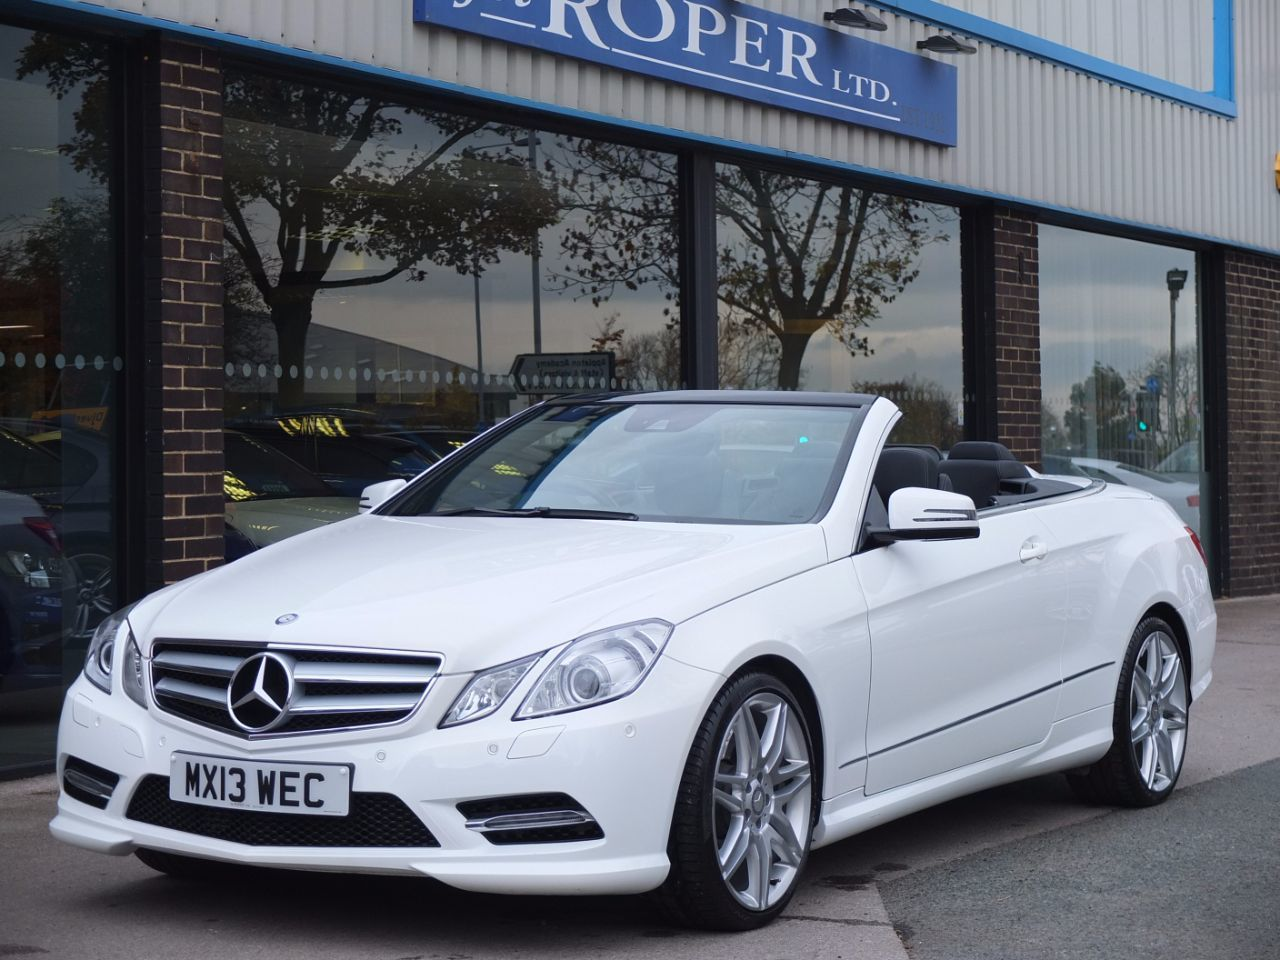 Mercedes-Benz E Class 3.0 E350 CDI BlueEFFICIENCY [265] Sport Convertible Auto Convertible Diesel Polar WhiteMercedes-Benz E Class 3.0 E350 CDI BlueEFFICIENCY [265] Sport Convertible Auto Convertible Diesel Polar White at fa Roper Ltd Bradford